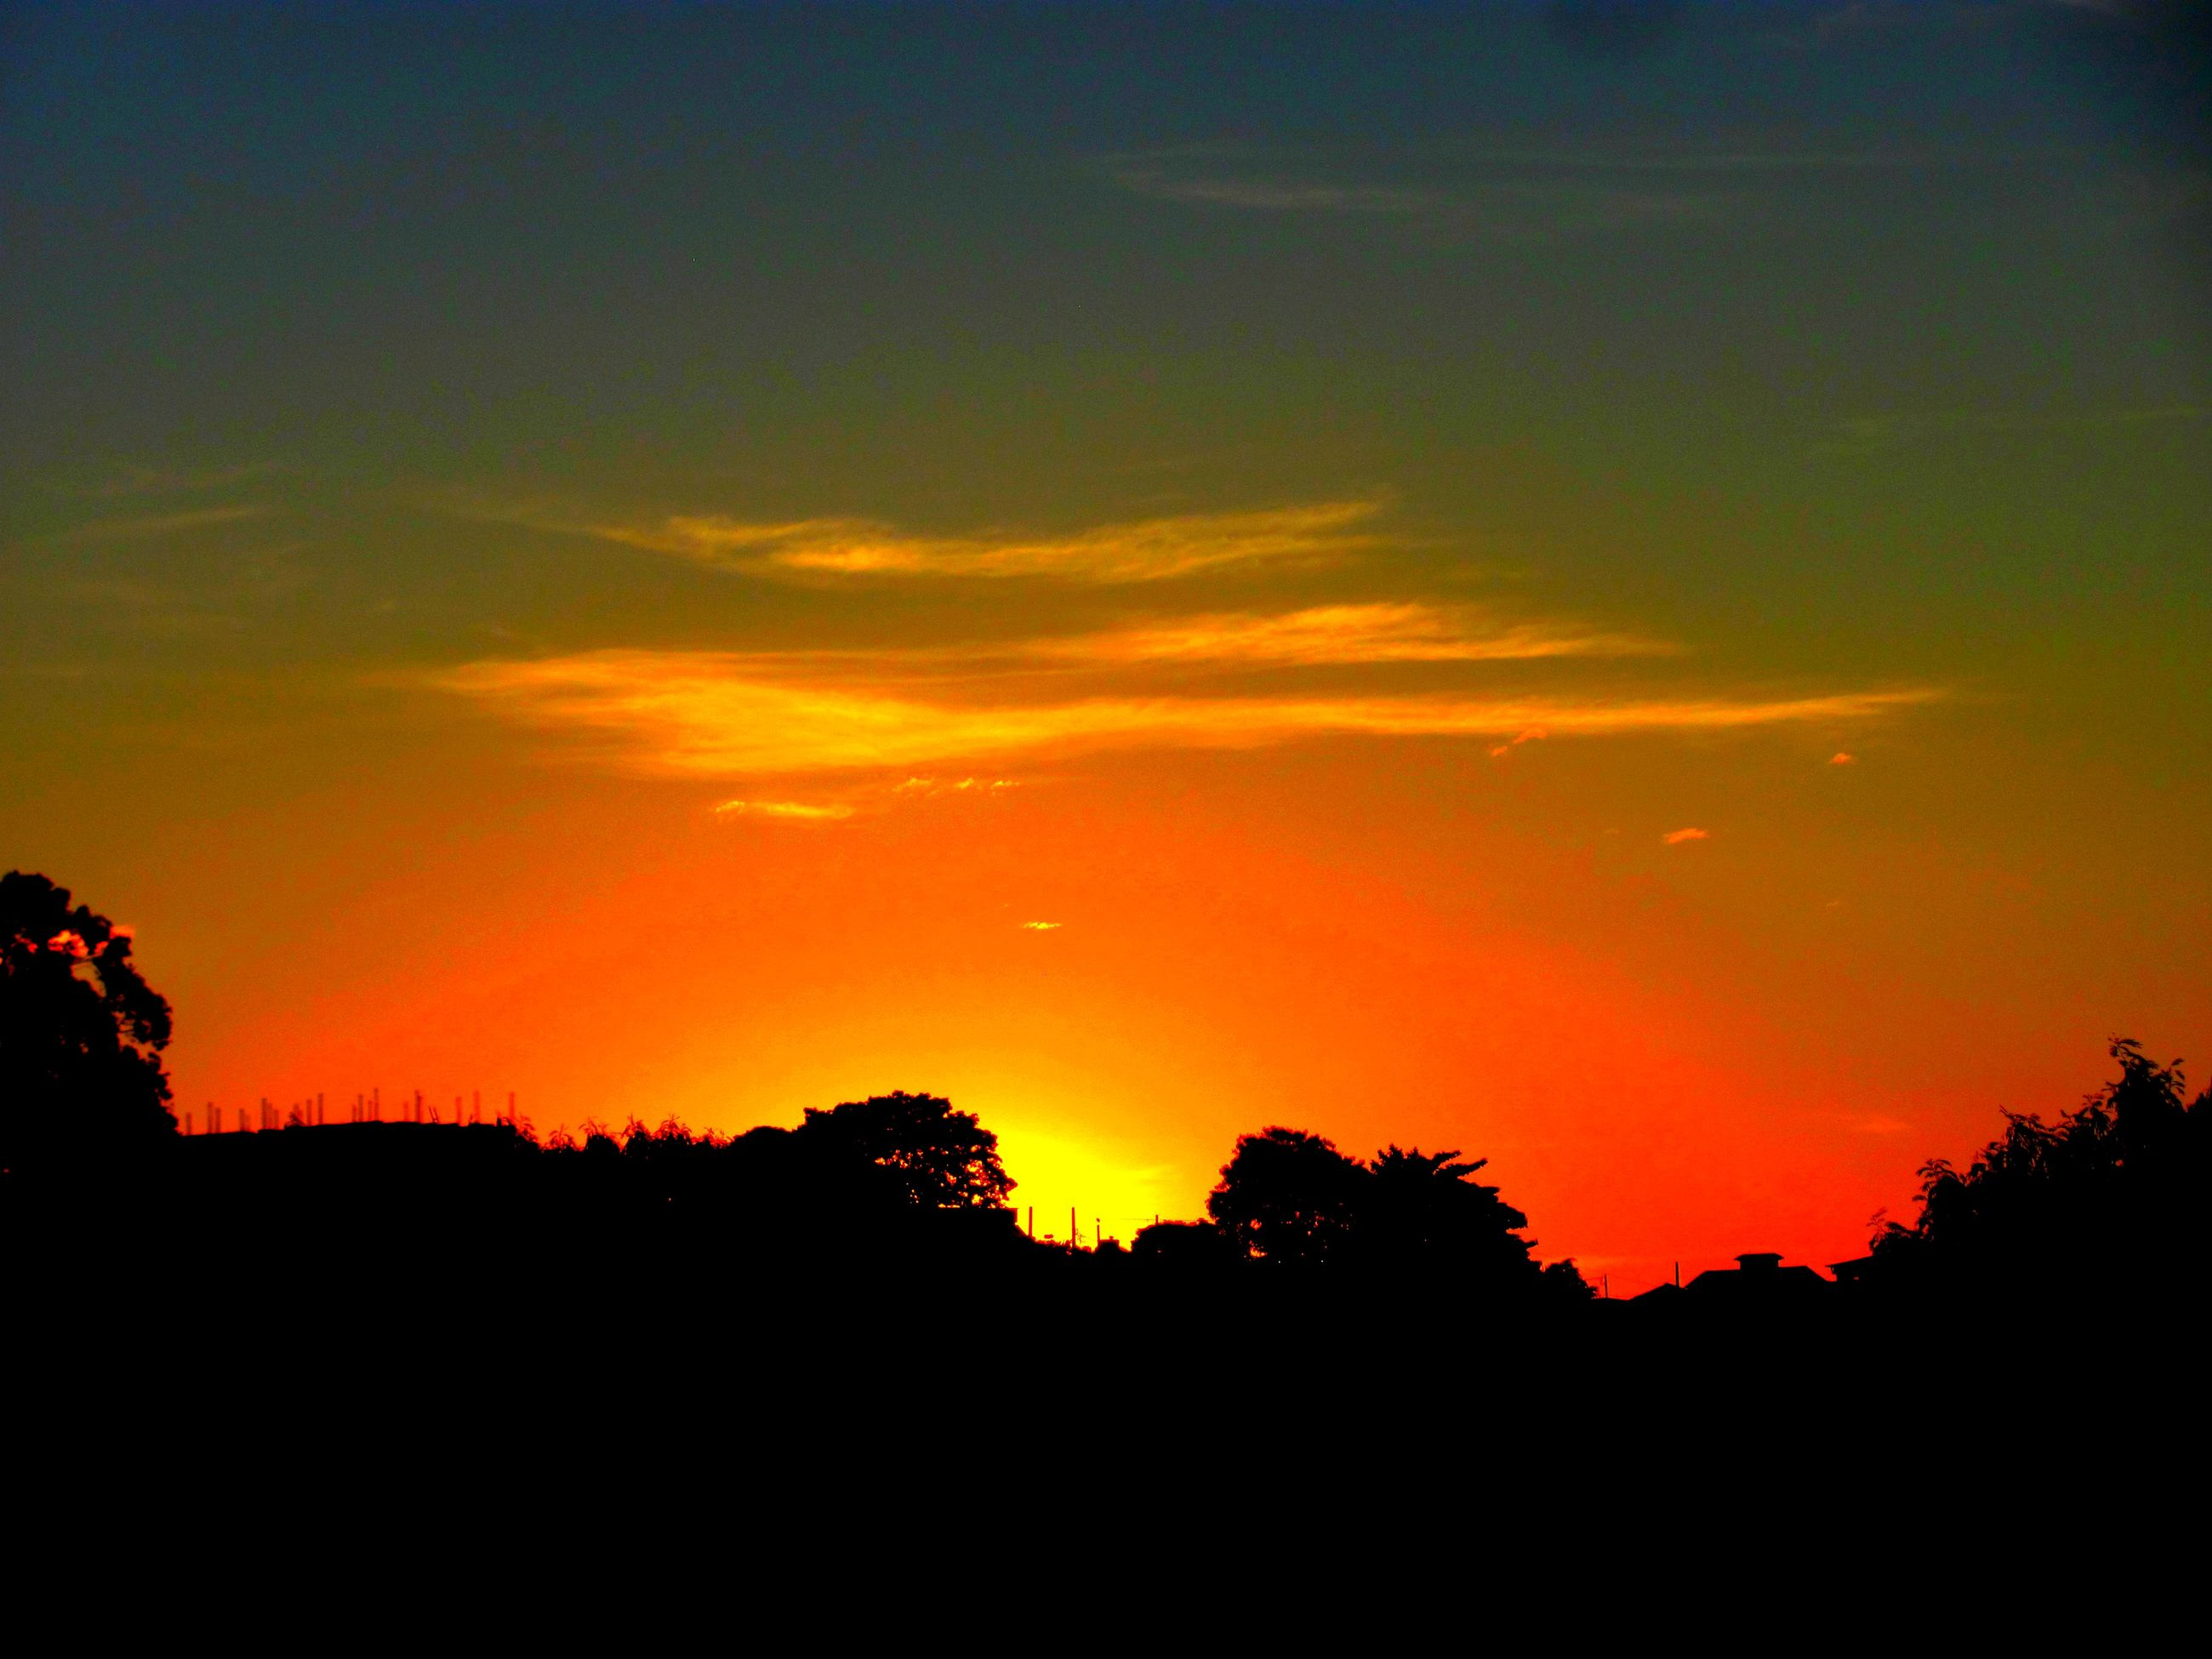 sunset, silhouette, nature, beauty in nature, orange color, tranquility, sky, scenics, no people, outdoors, tranquil scene, tree, astronomy